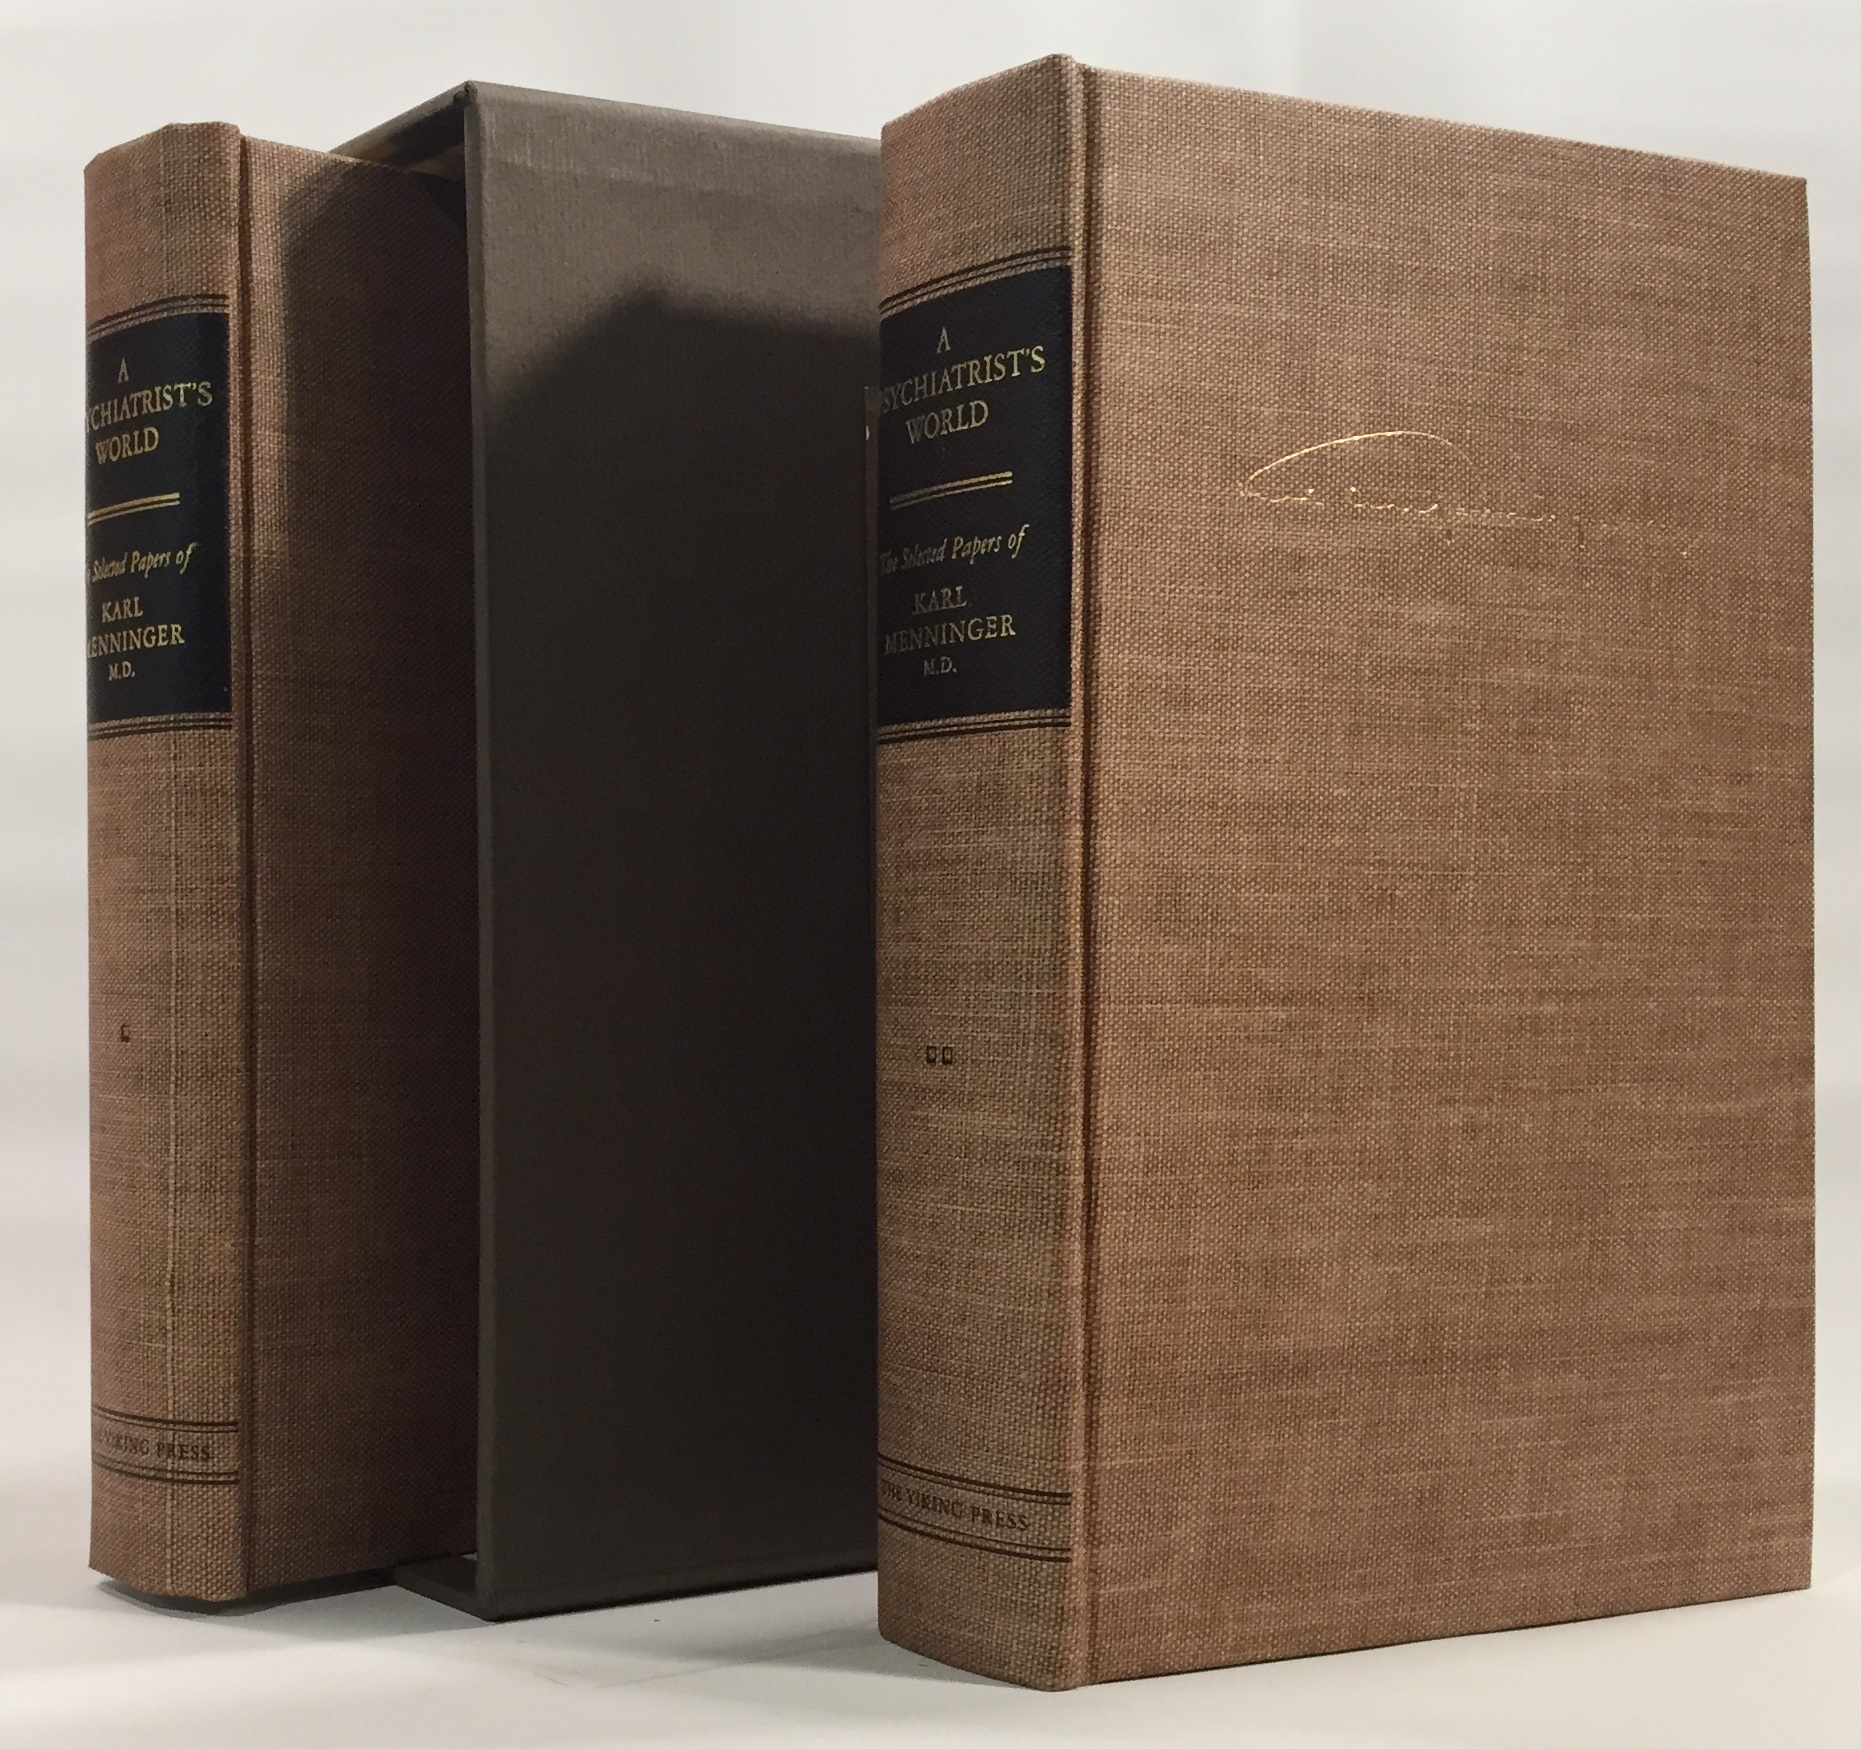 A Psychiatrist's World. The Selected Papers of Karl Menninger, M. D. (2 volumes)